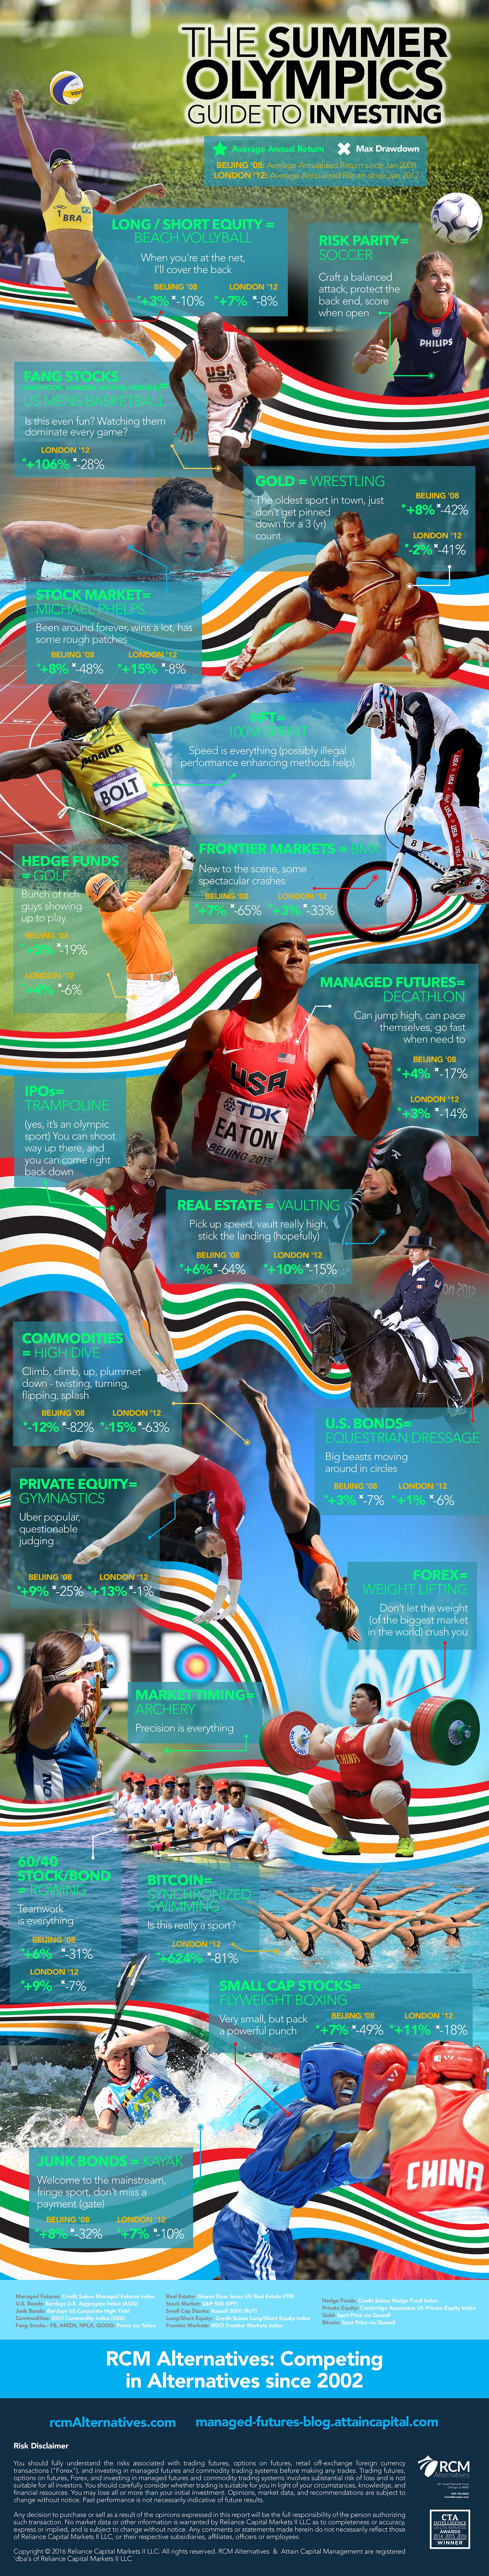 Road To Rio Olympics Infographic Investments